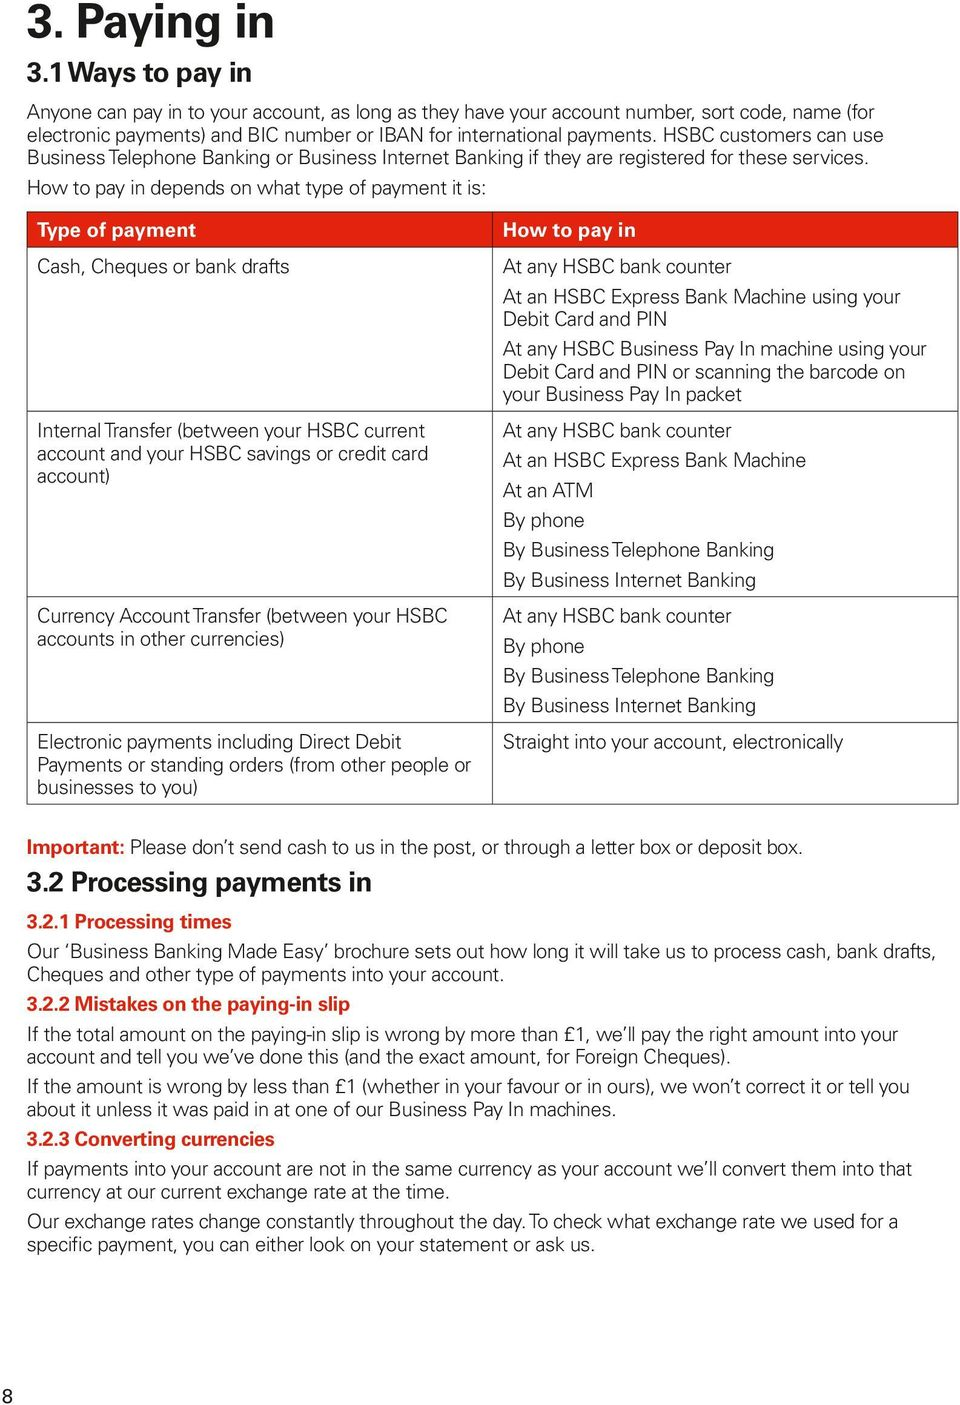 HSBC customers can use Business Telephone Banking or Business Internet Banking if they are registered for these services.